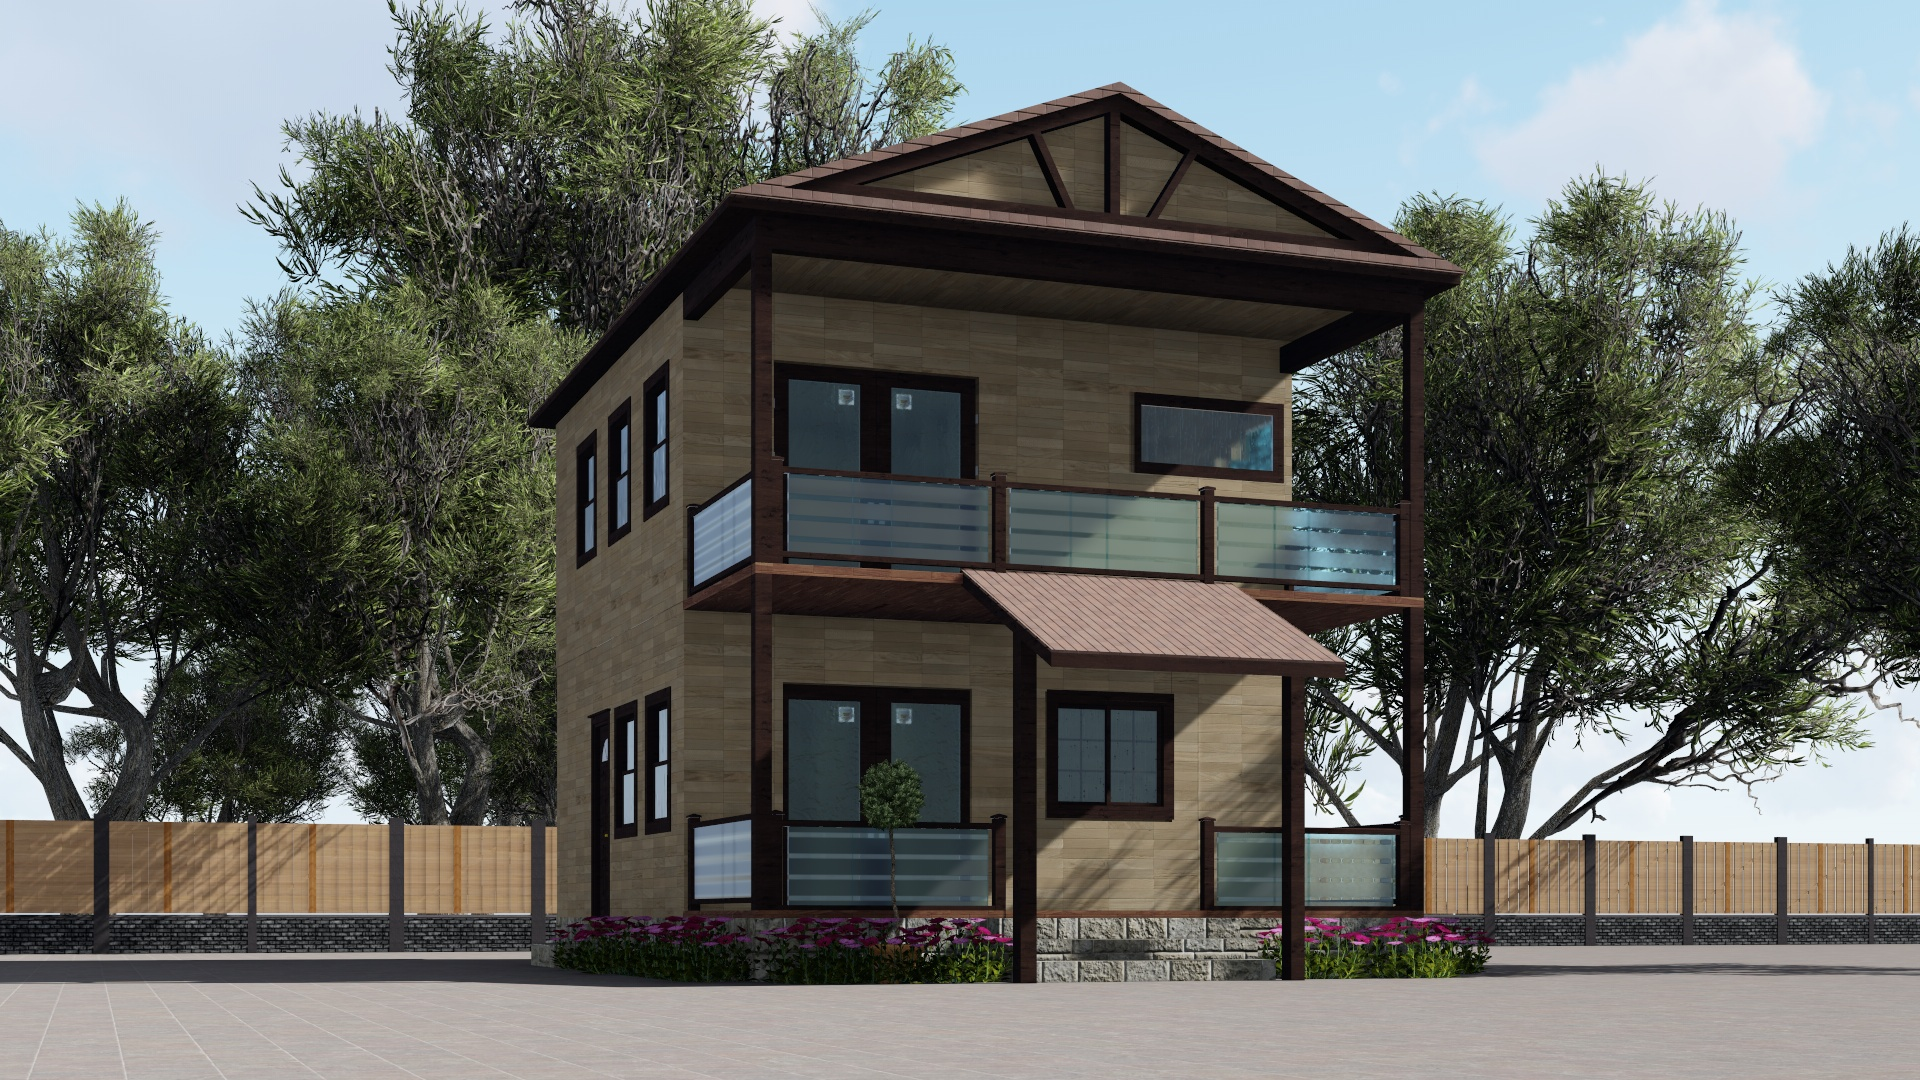 20 20 cabin easybuildingplans for 20 by 20 house plan